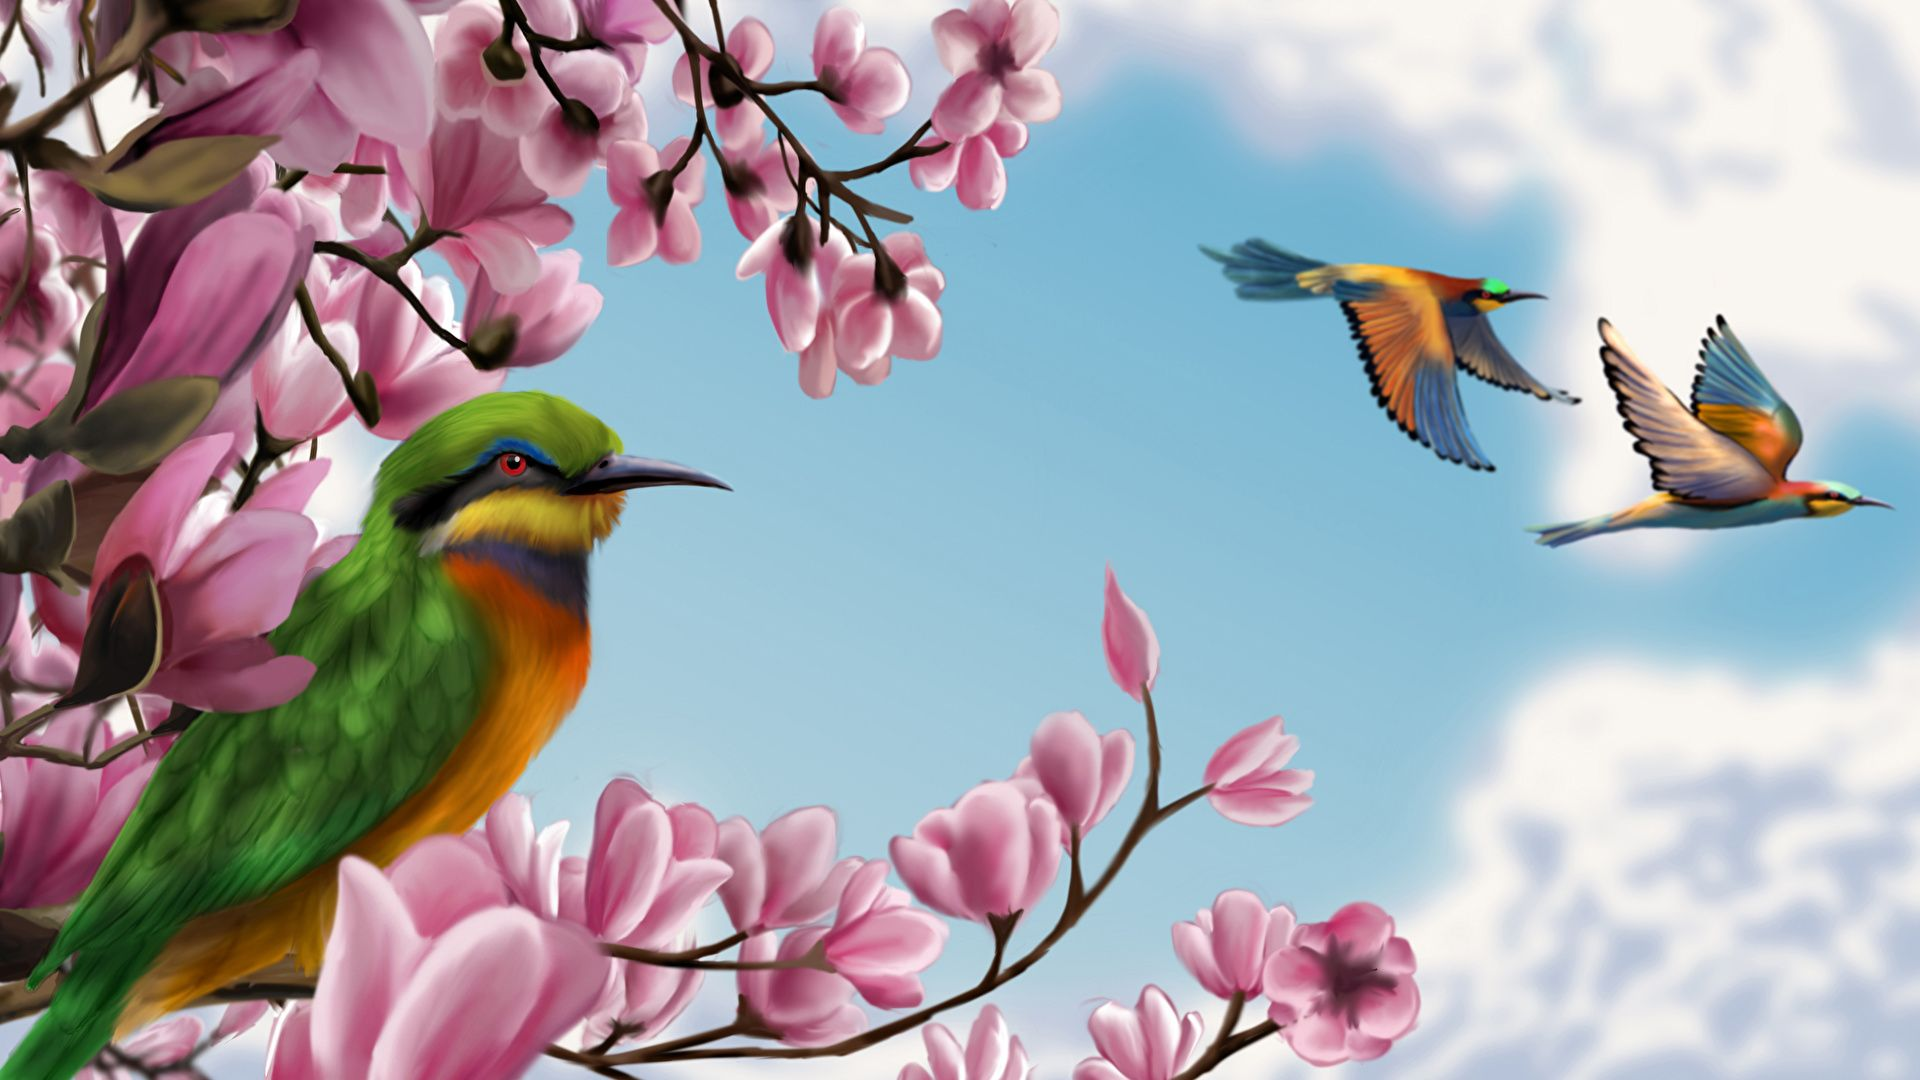 Bird And Butterfly wallpaper theme